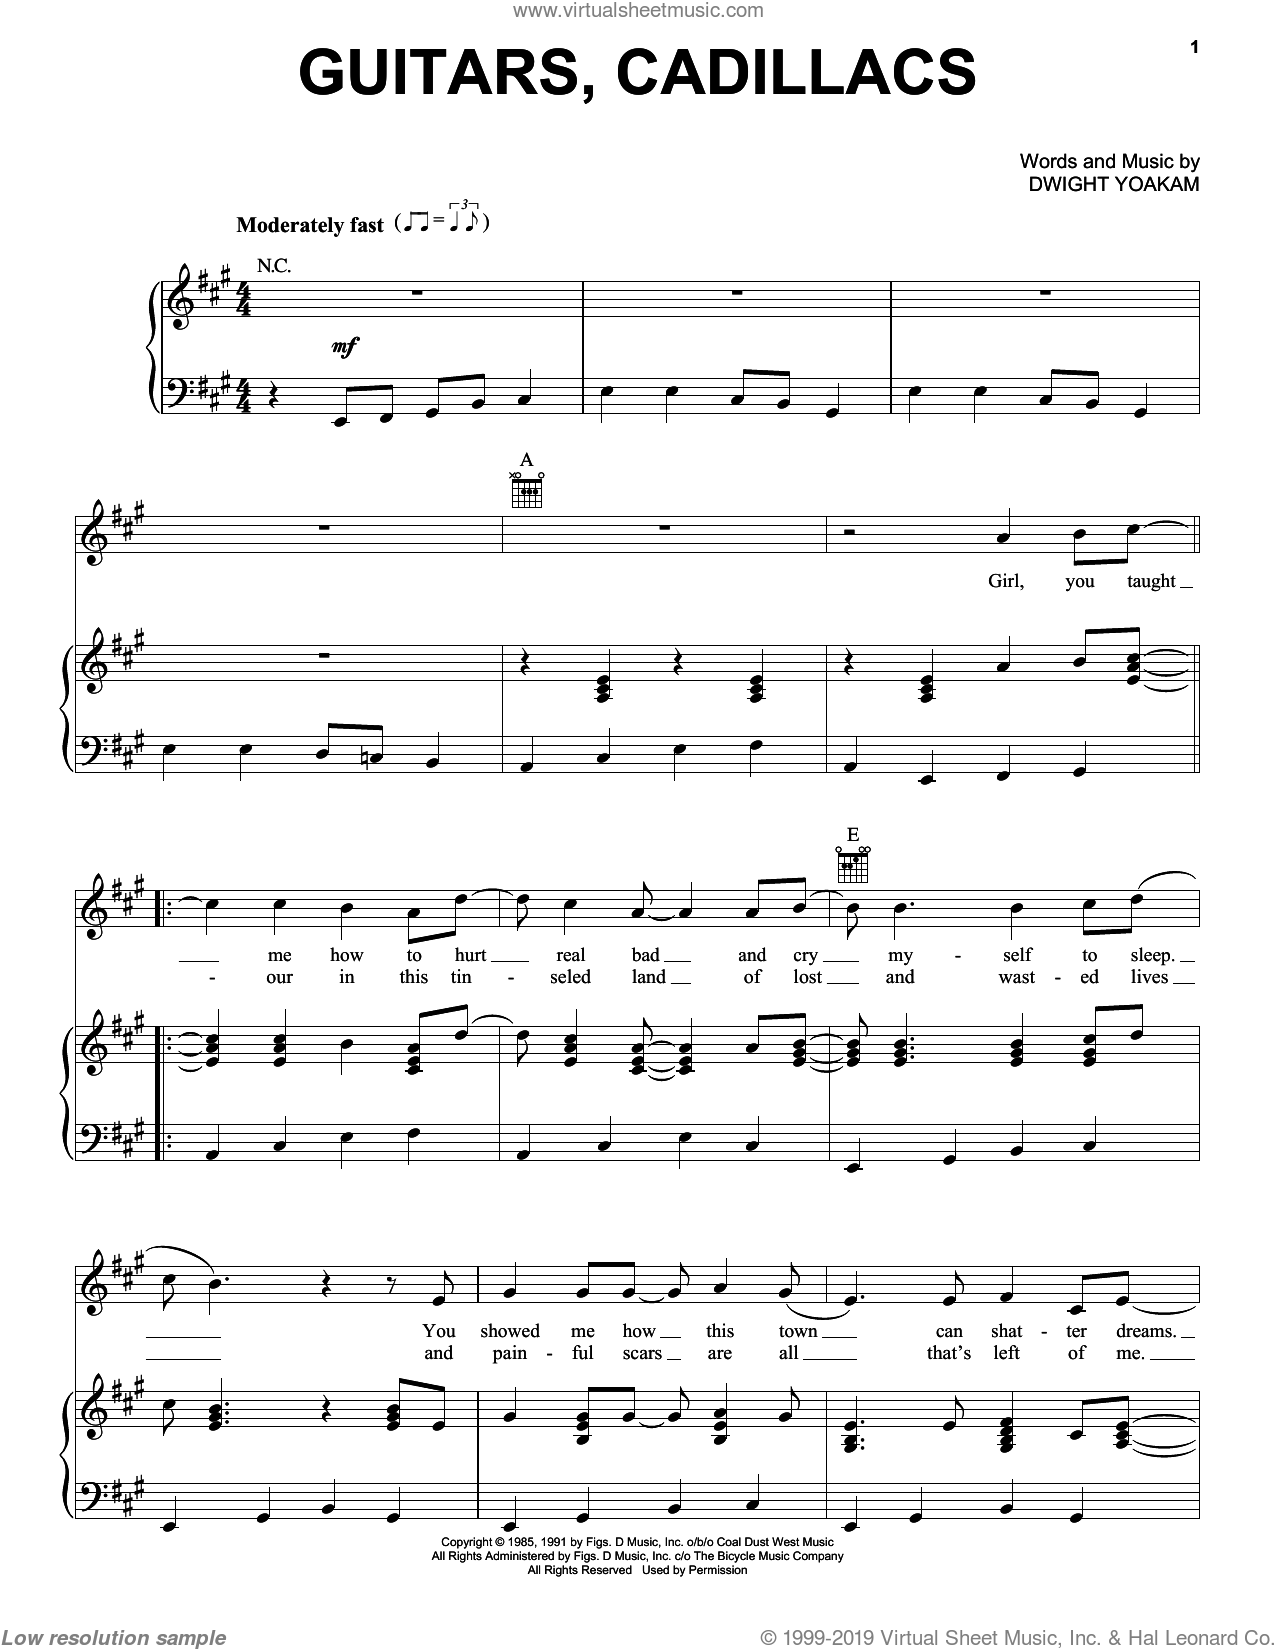 Guitars, Cadillacs sheet music for voice, piano or guitar by Dwight Yoakam, intermediate skill level